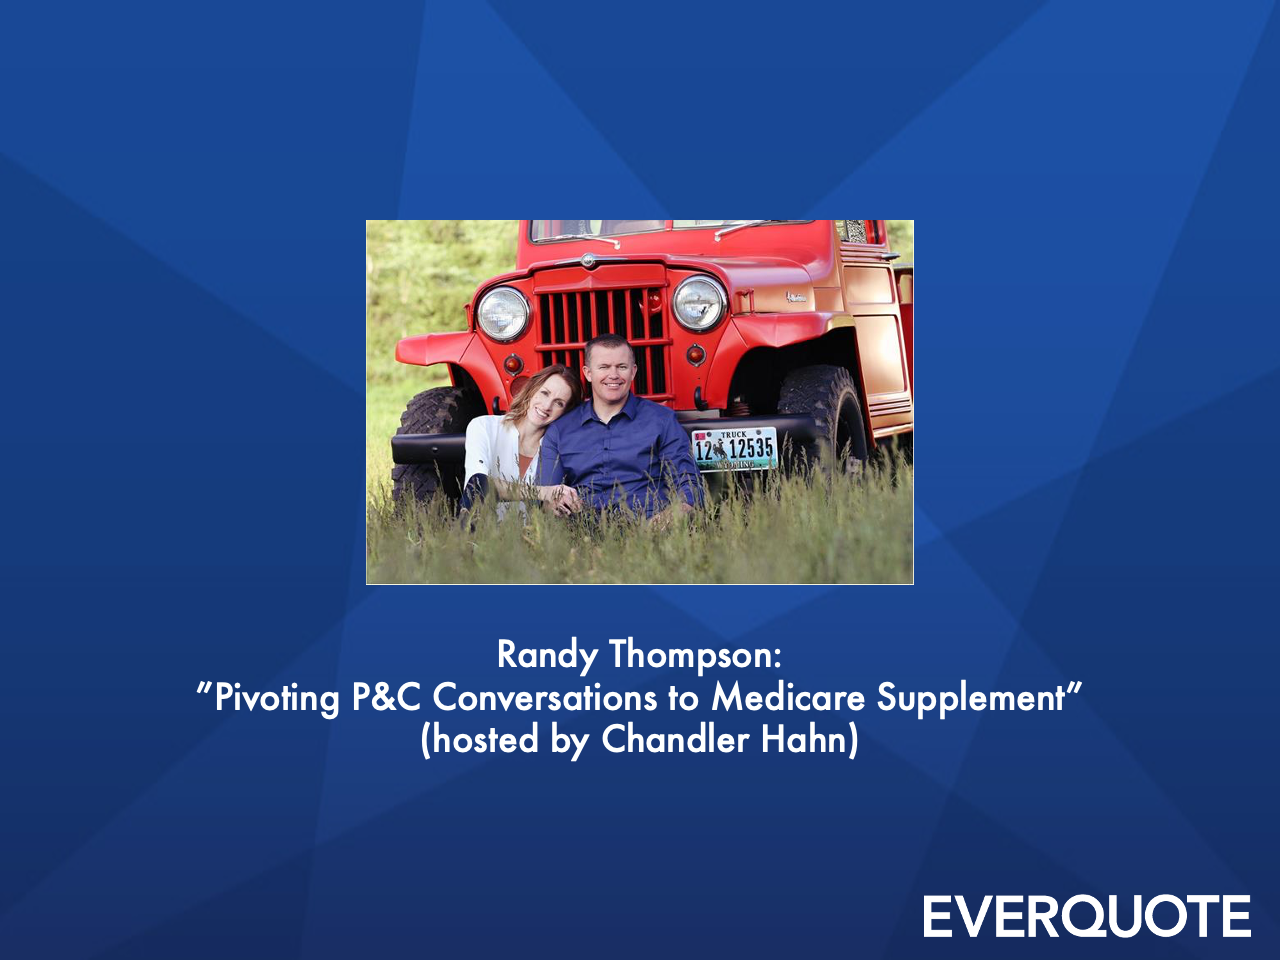 Pivoting P&C Conversations to Medicare Supplement with Randy Thompson (hosted by Chandler Hahn)